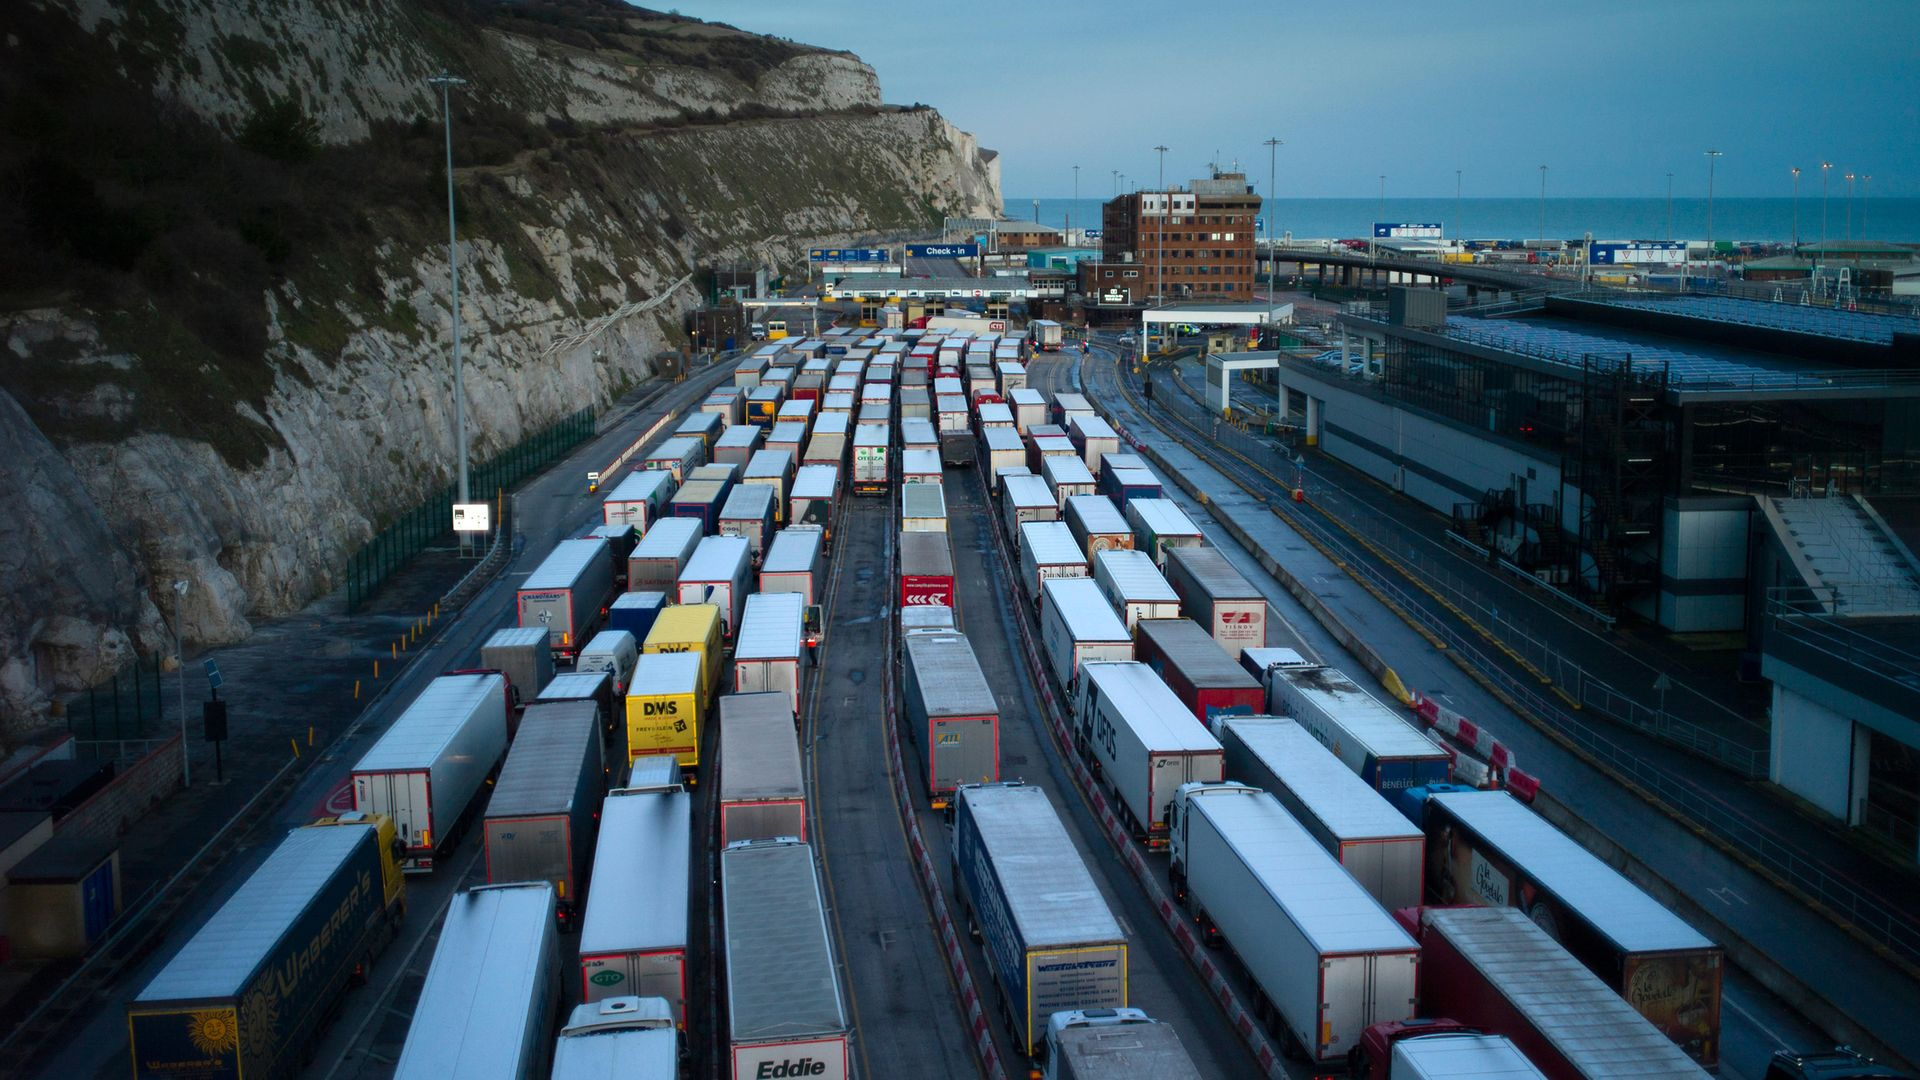 Freight queues at Dover port in Dover, England - Credit: Getty Images